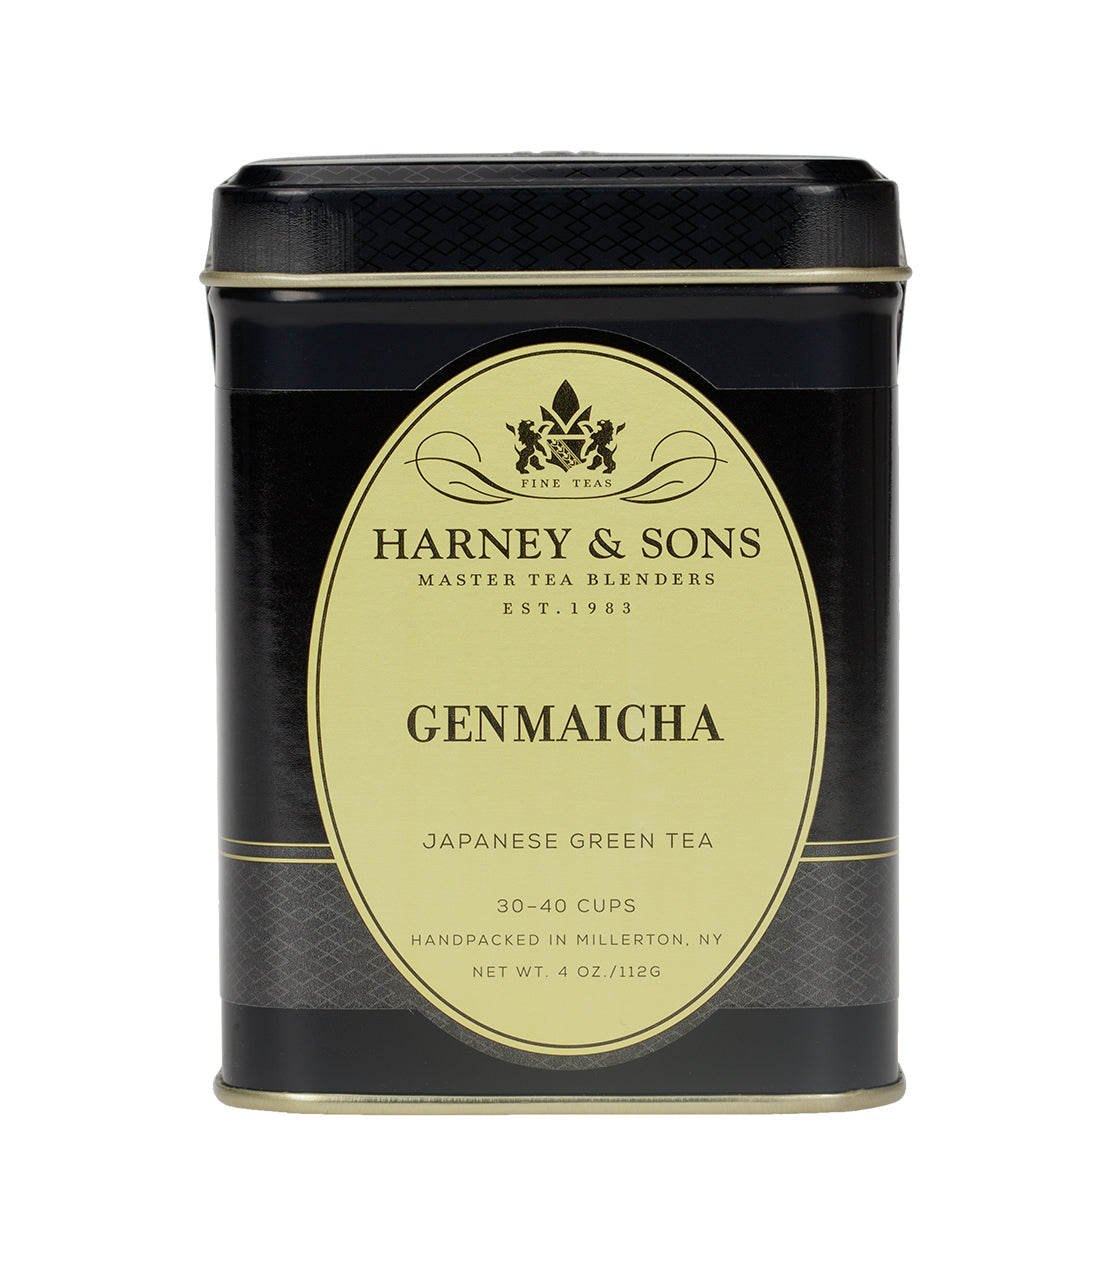 Genmaicha - Loose 4 oz. Tin - Harney & Sons Fine Teas